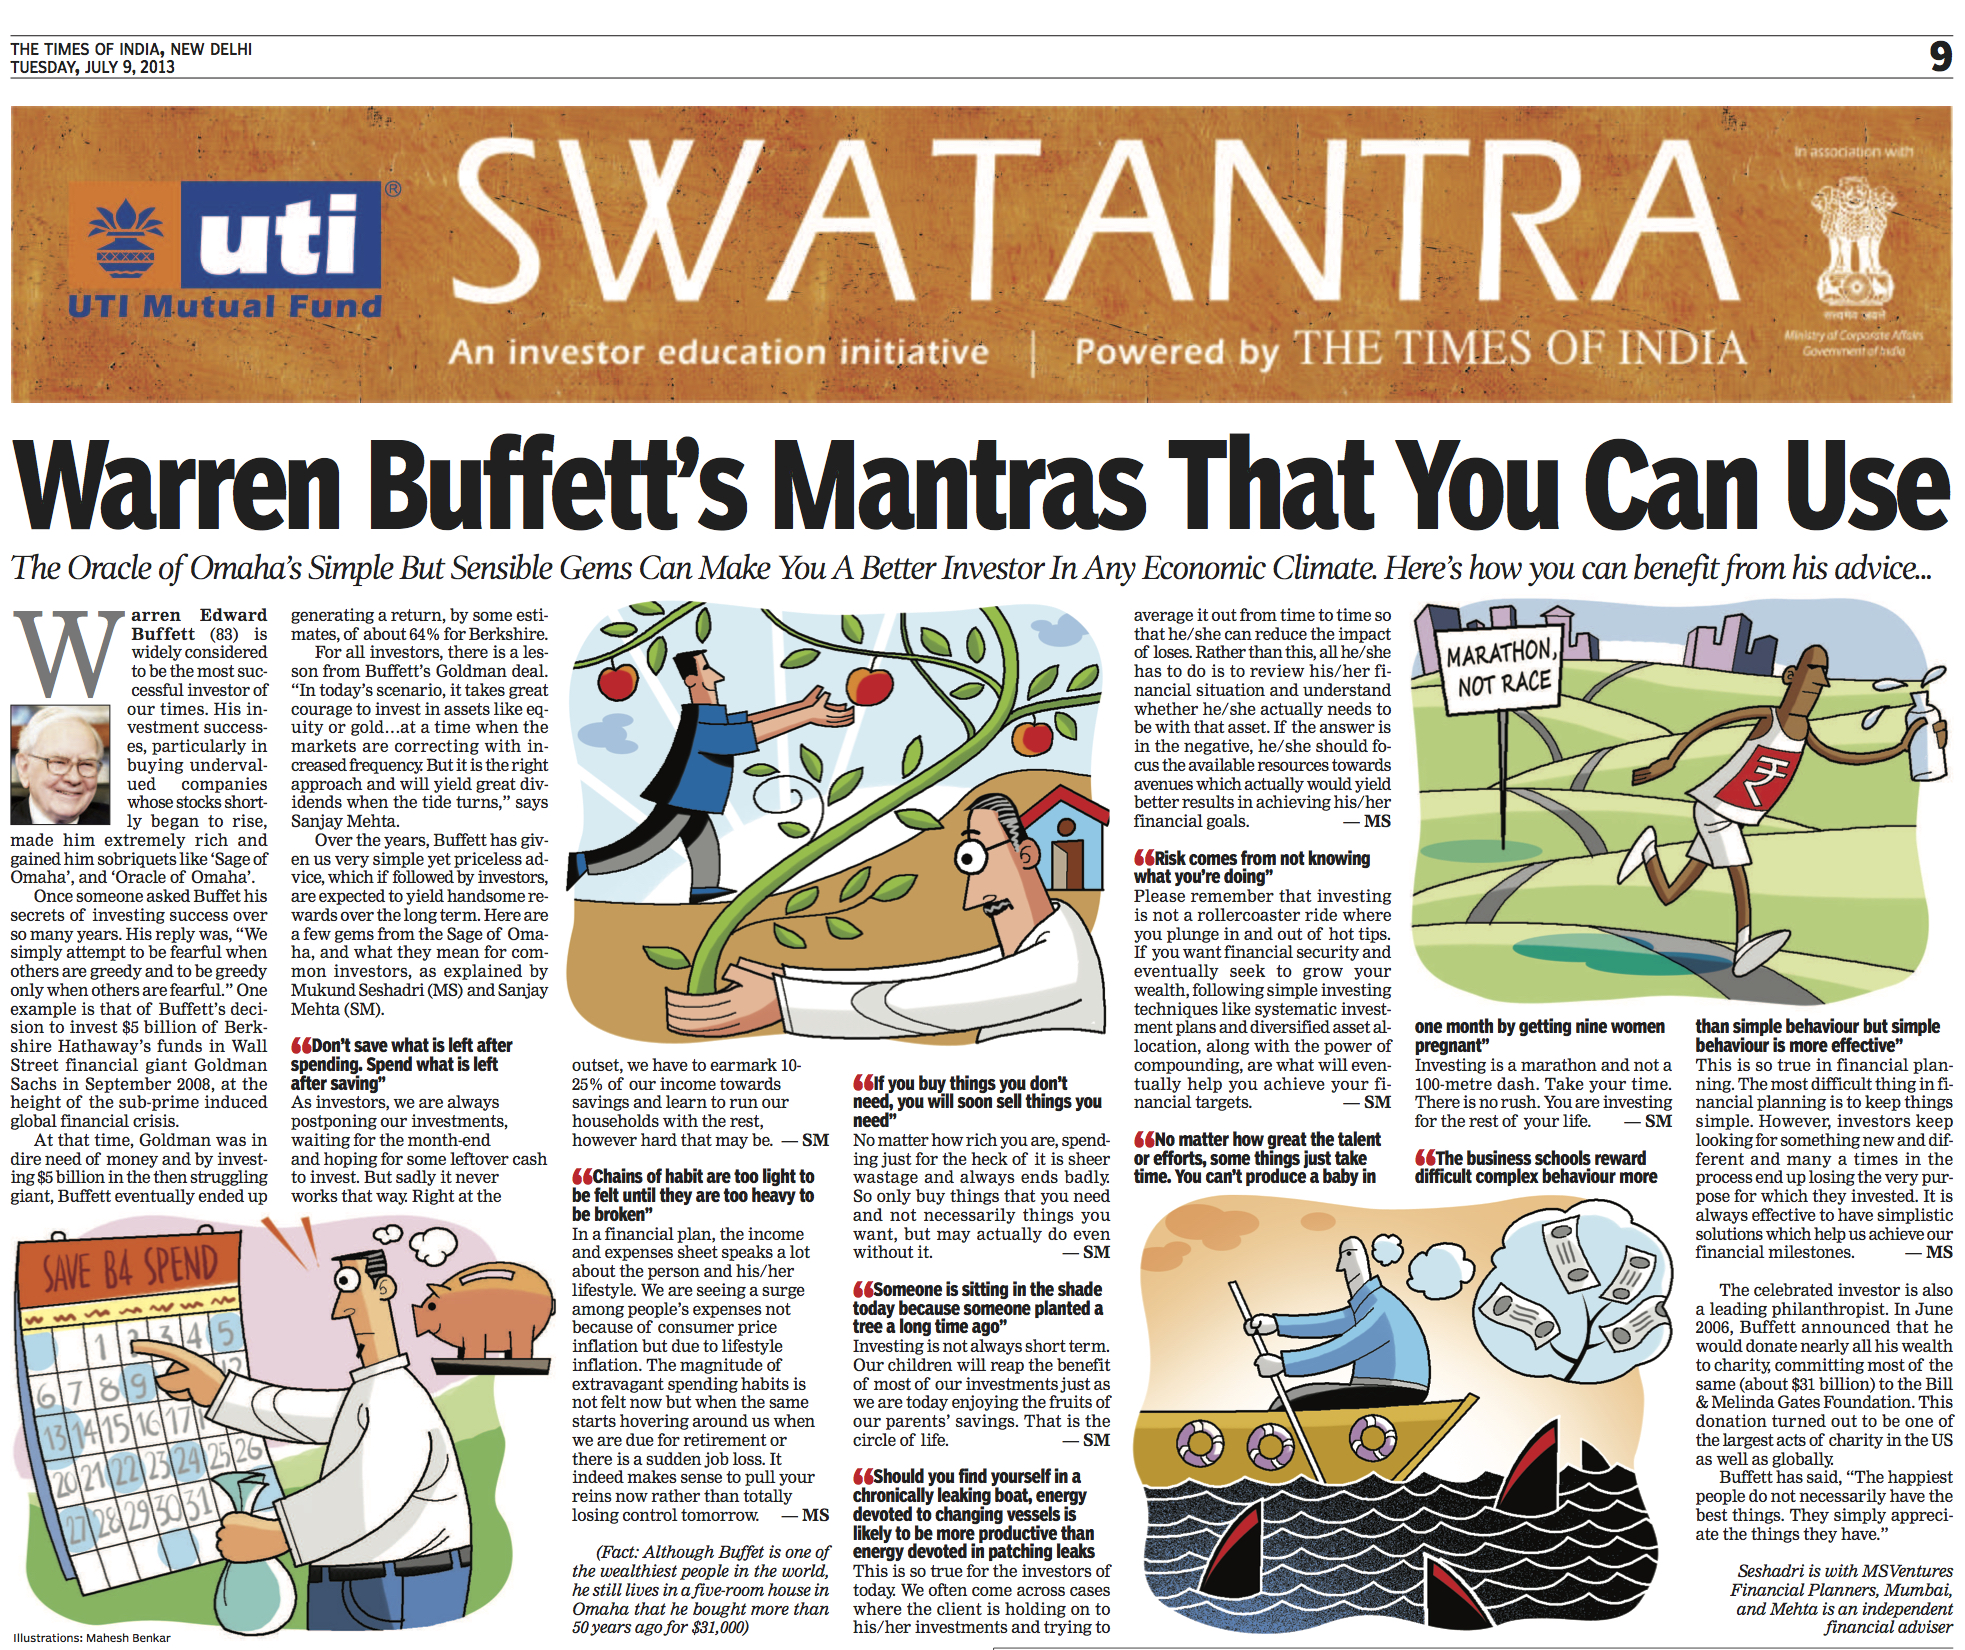 SMFS - TOI Article - 9 July, 2013